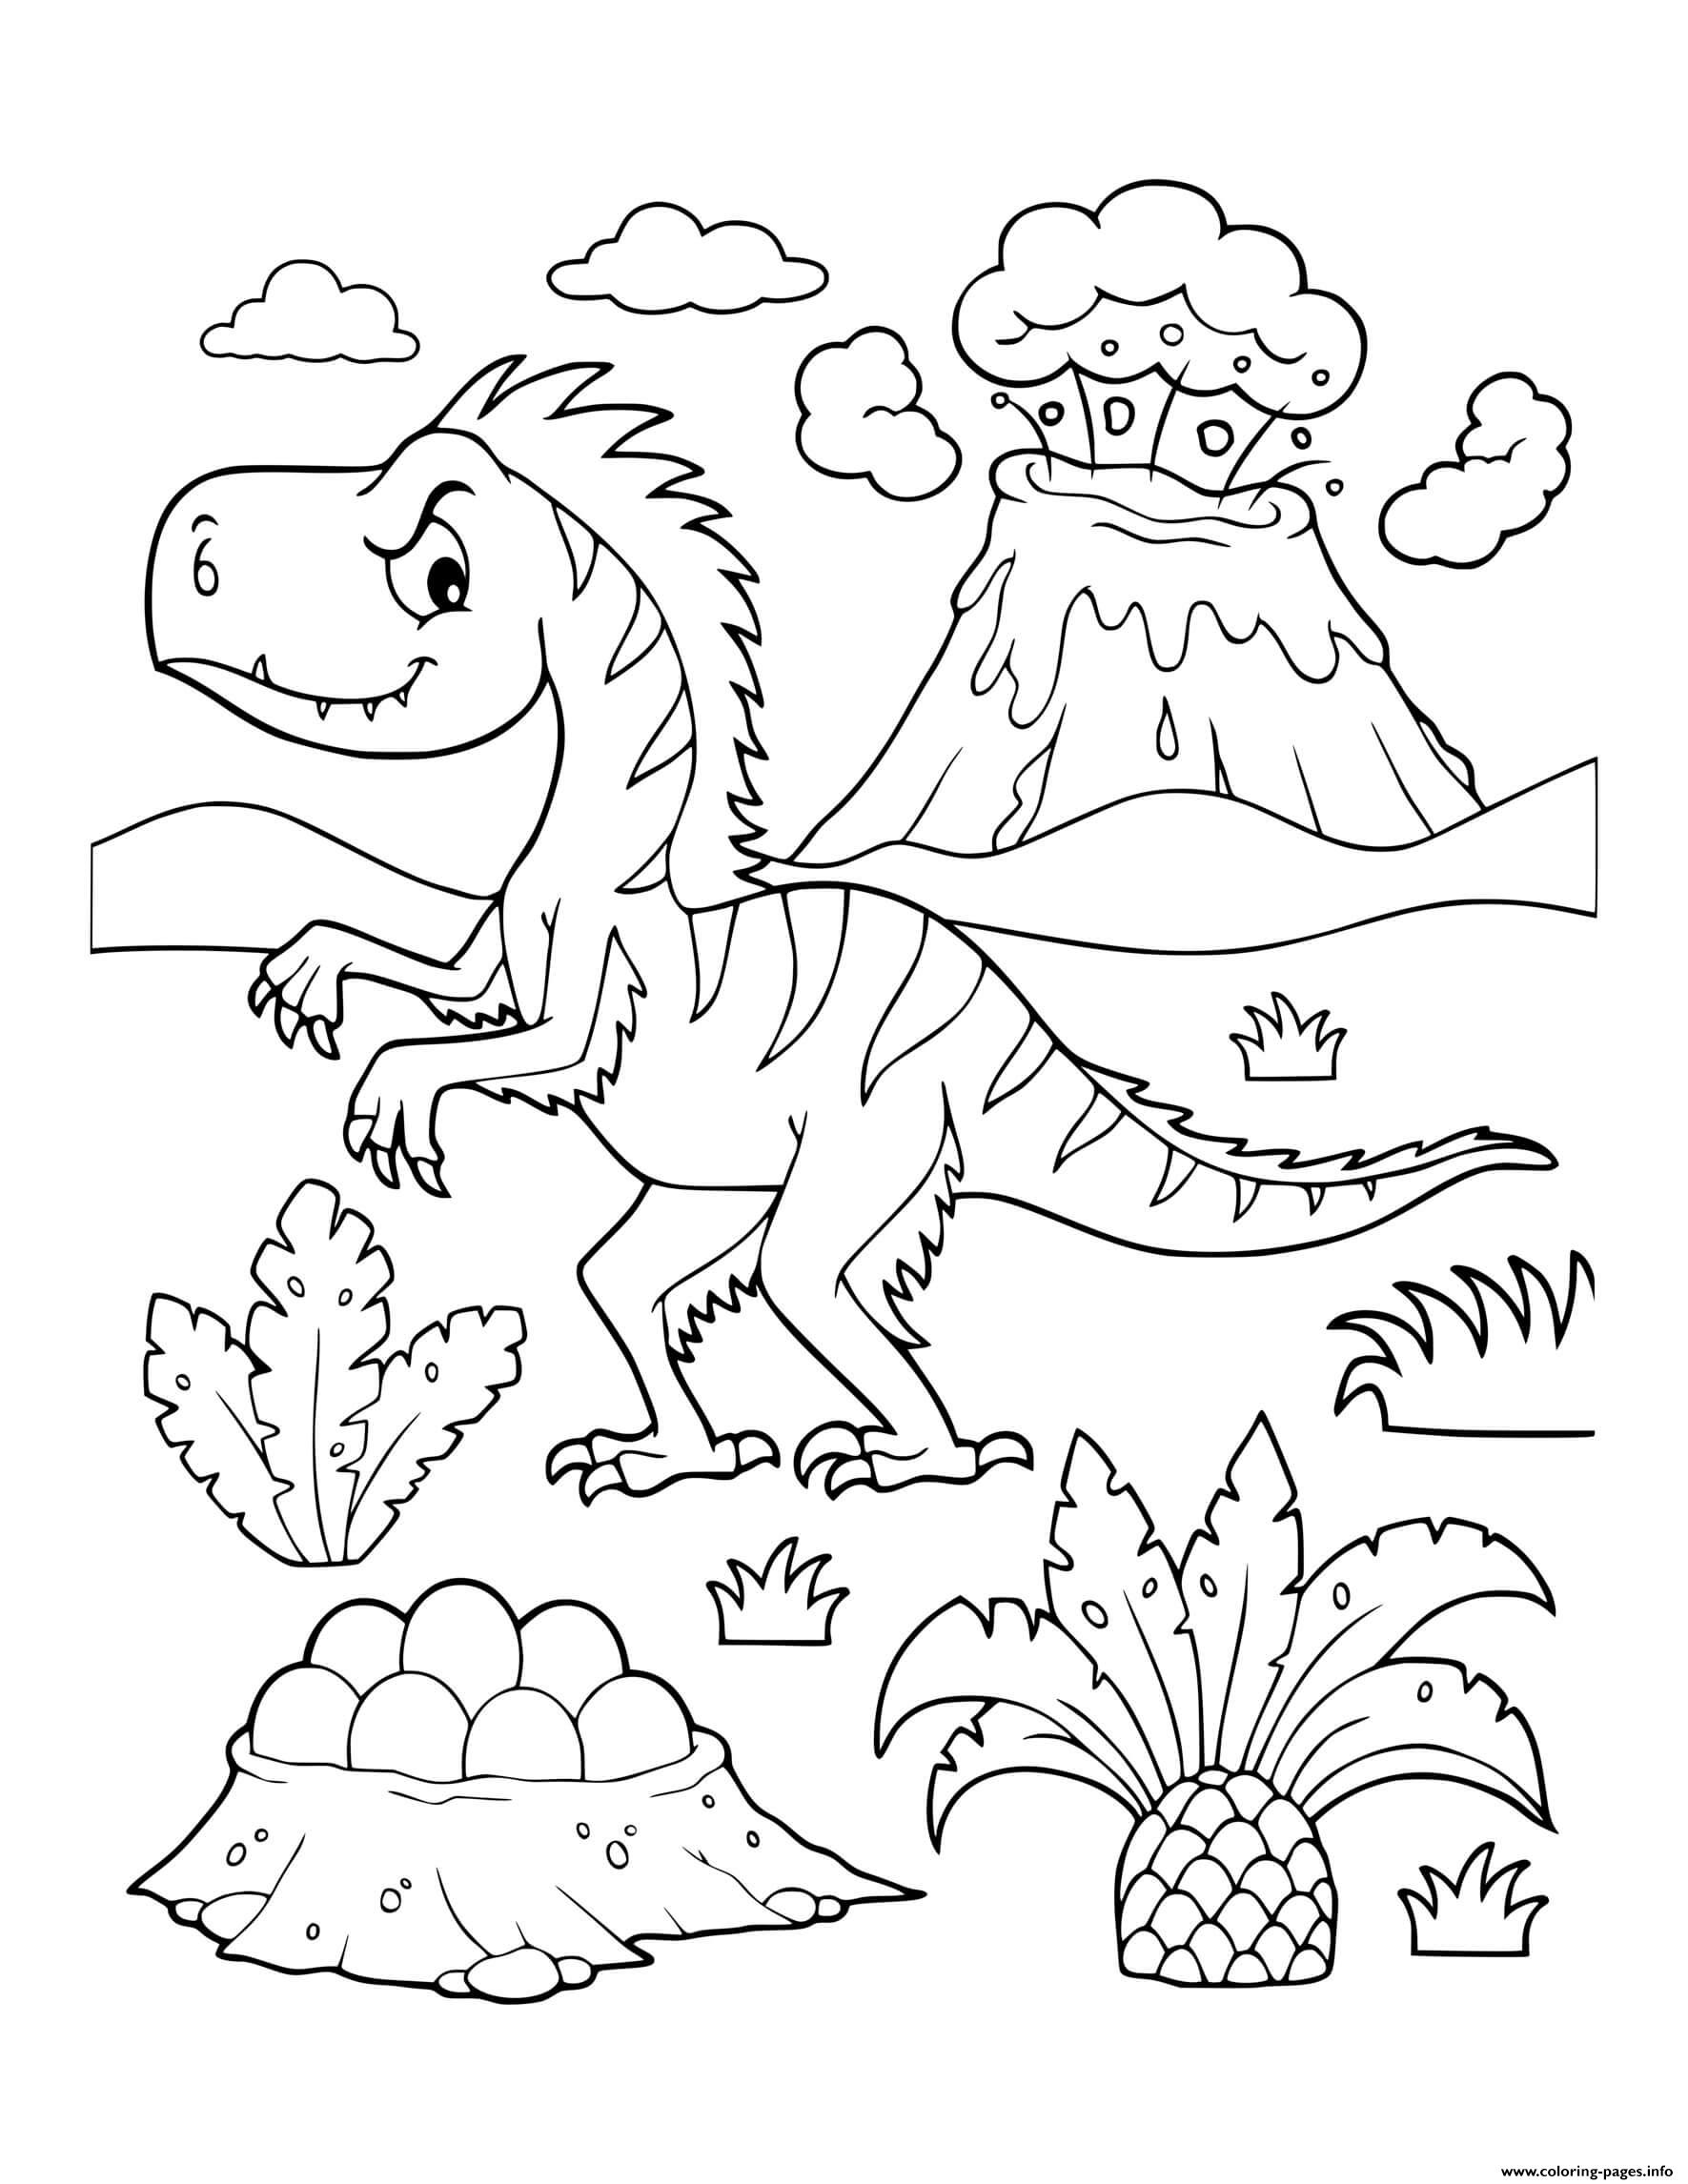 Dinosaur Prehistoric Feathered Dinosaur Erupting Volcano Coloring Pages Printable